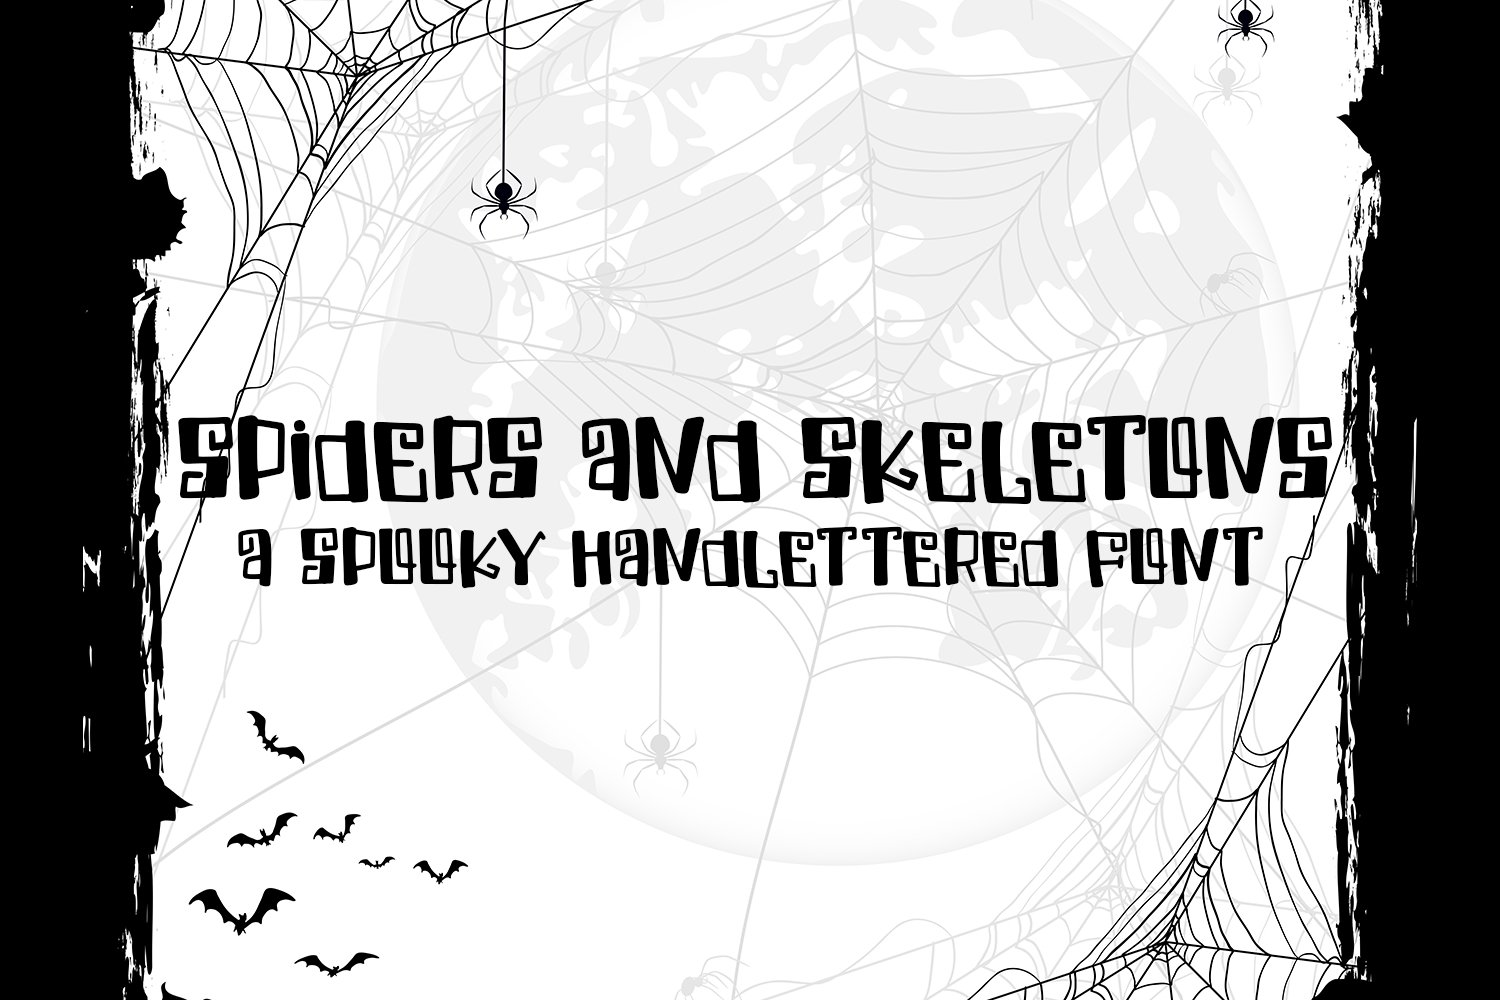 Spiders And Skeletons - A Spooky Hand-Lettered Font example image 1